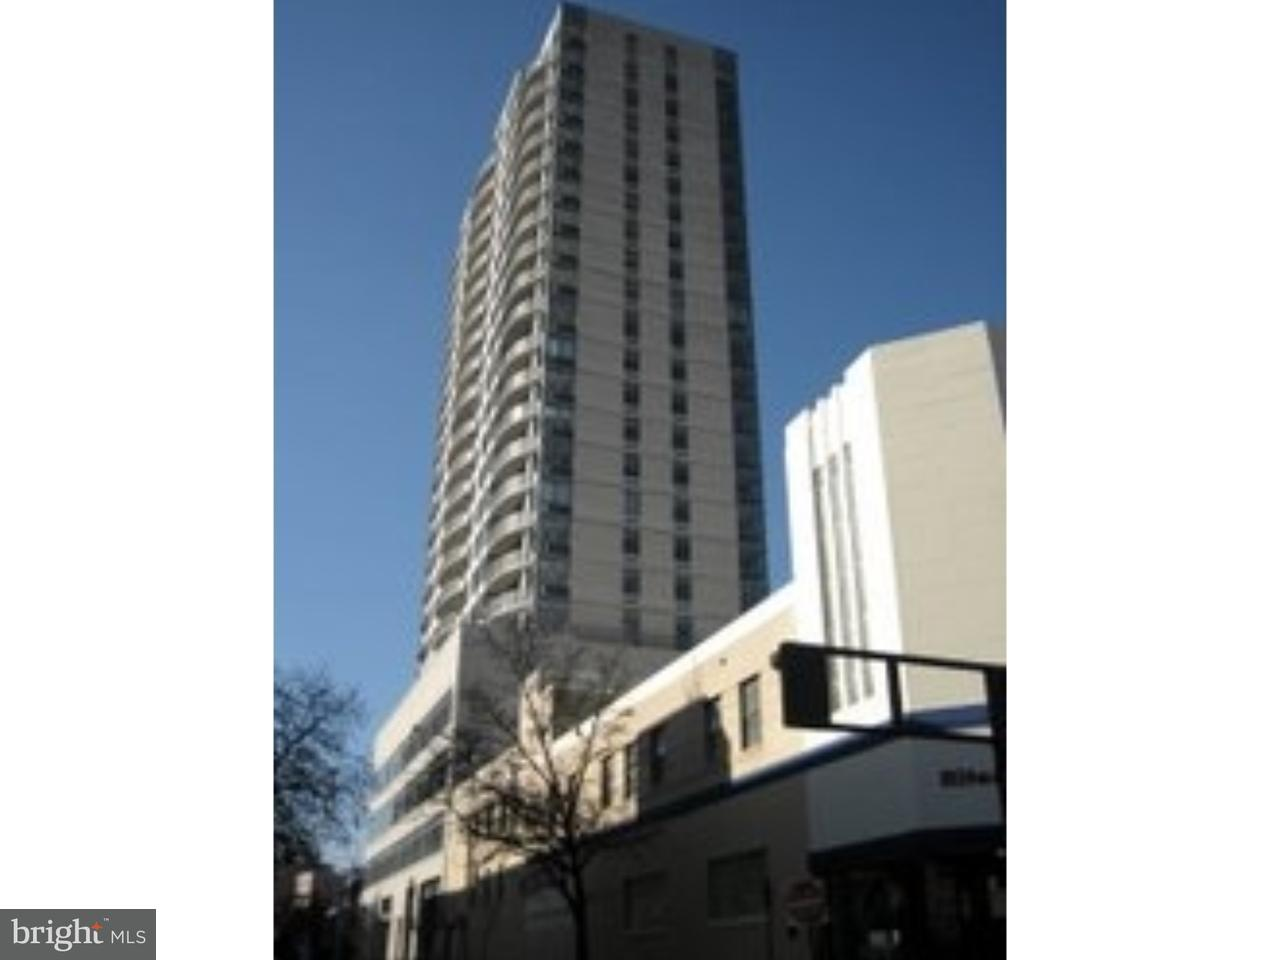 Condominium for Rent at 1 SPRING ST #2405 New Brunswick, New Jersey 08901 United States